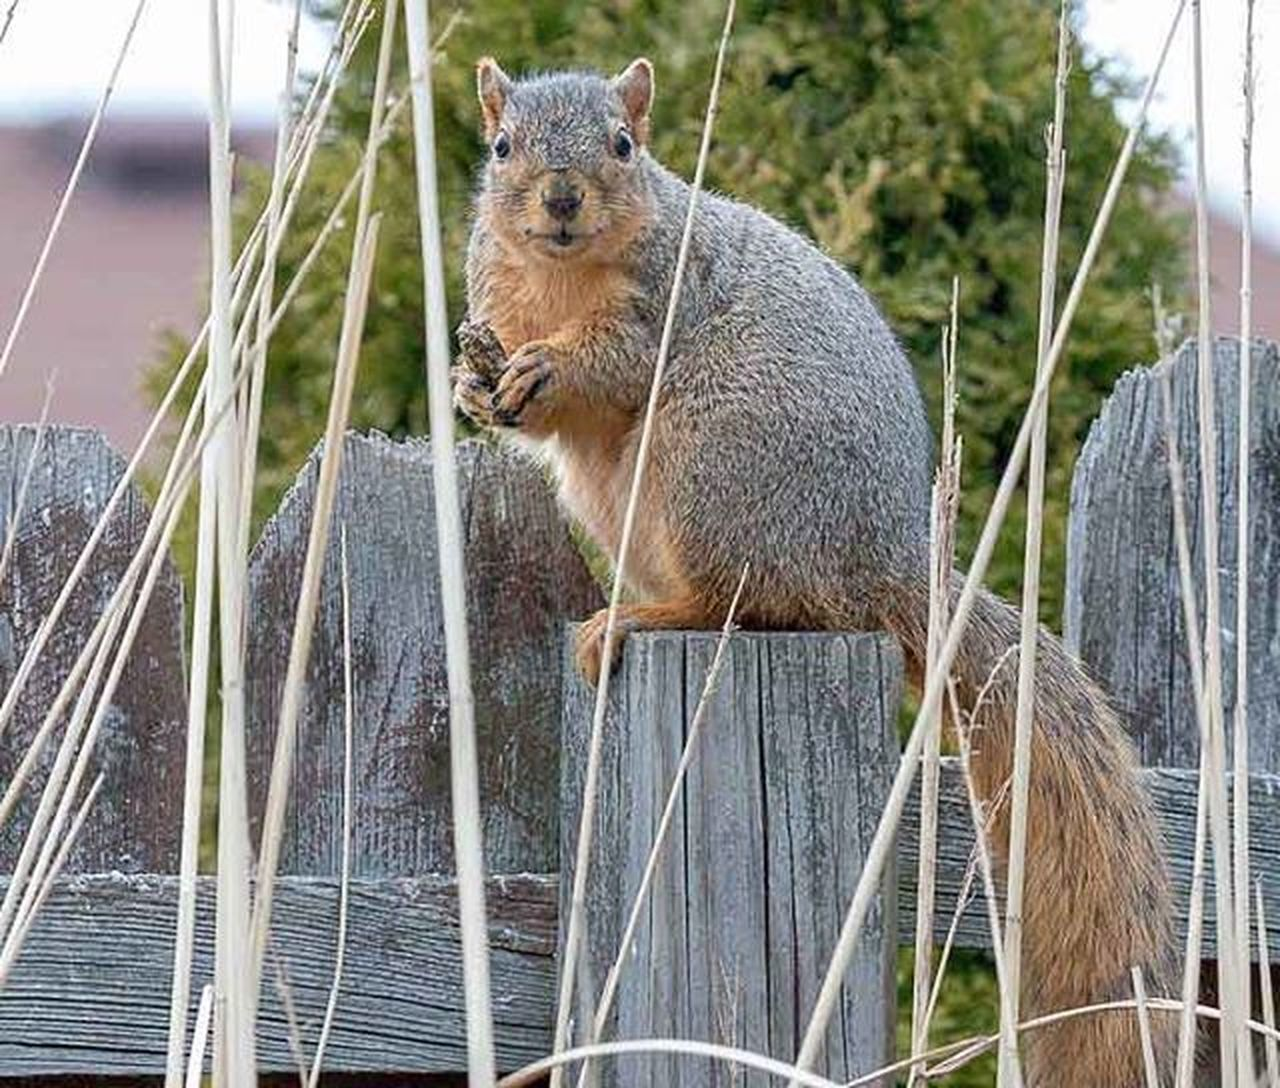 """Hey you, where's my peanuts"" 😄 Squirrels Backyardwildlife Peanutlover Wildlife_perfection Ig_discover_wildlife Igcutest_animals Naturephotography Canongallery Animal_sultans"